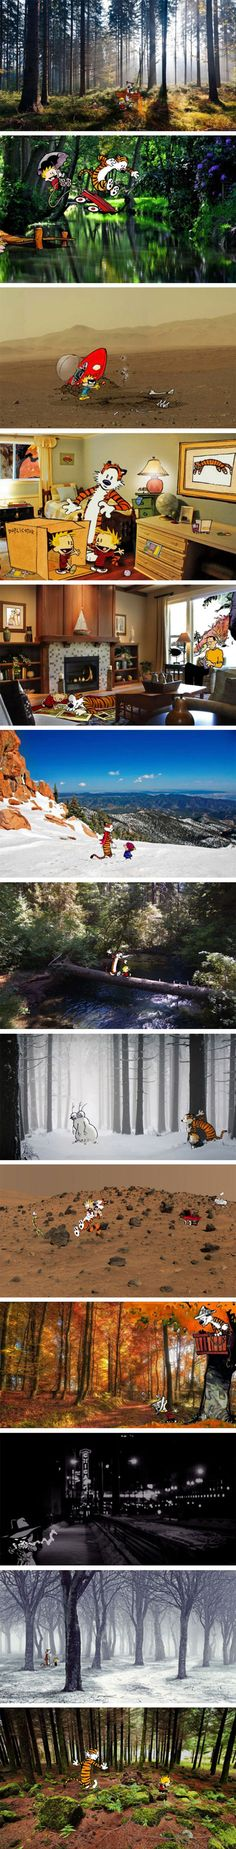 Calvin and Hobbes In Real Locations